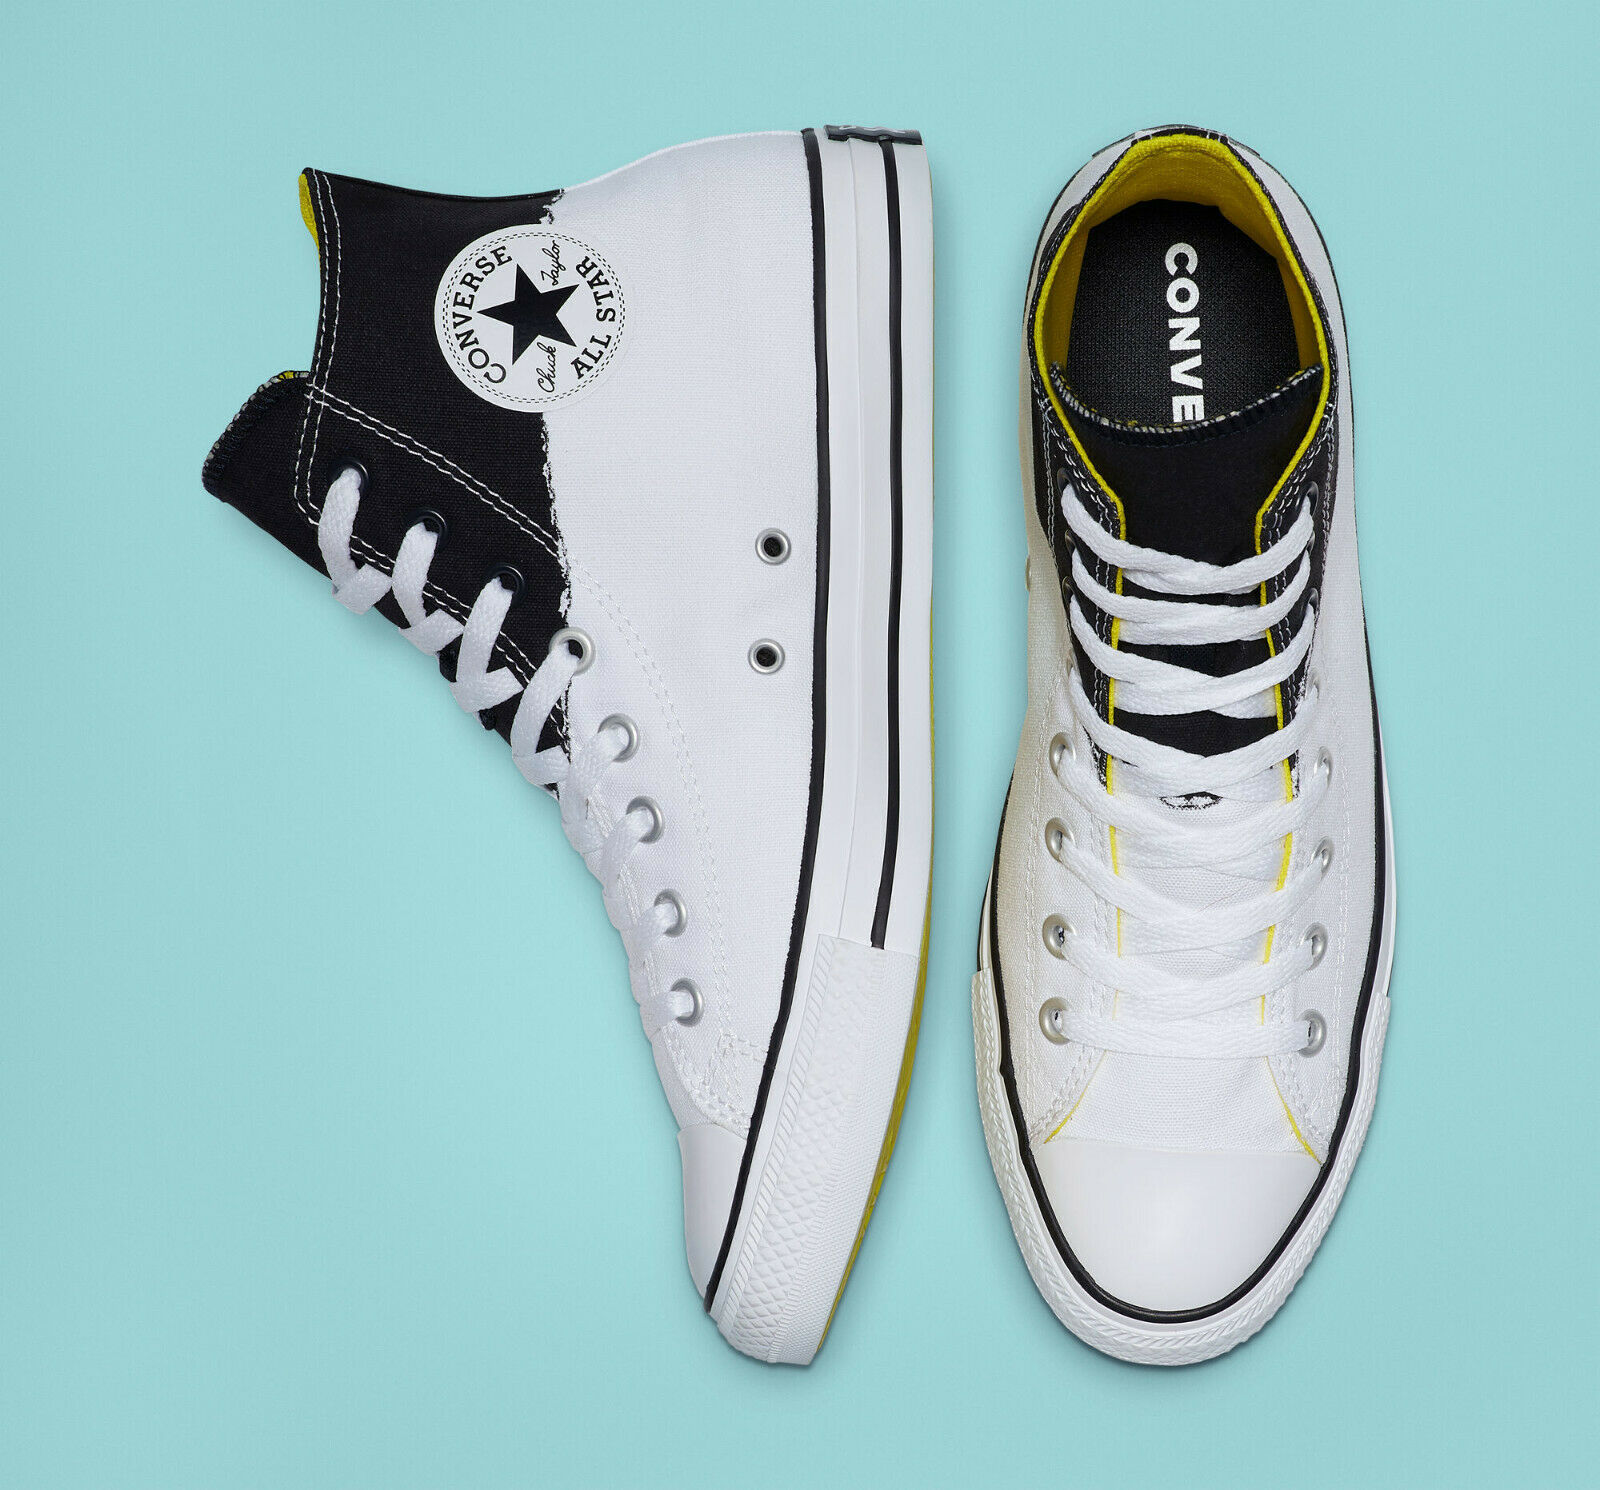 Converse Mens CTAS Hi I Stand For Canvas 165709C White/Black/Fresh Yellow Sz 10 image 3